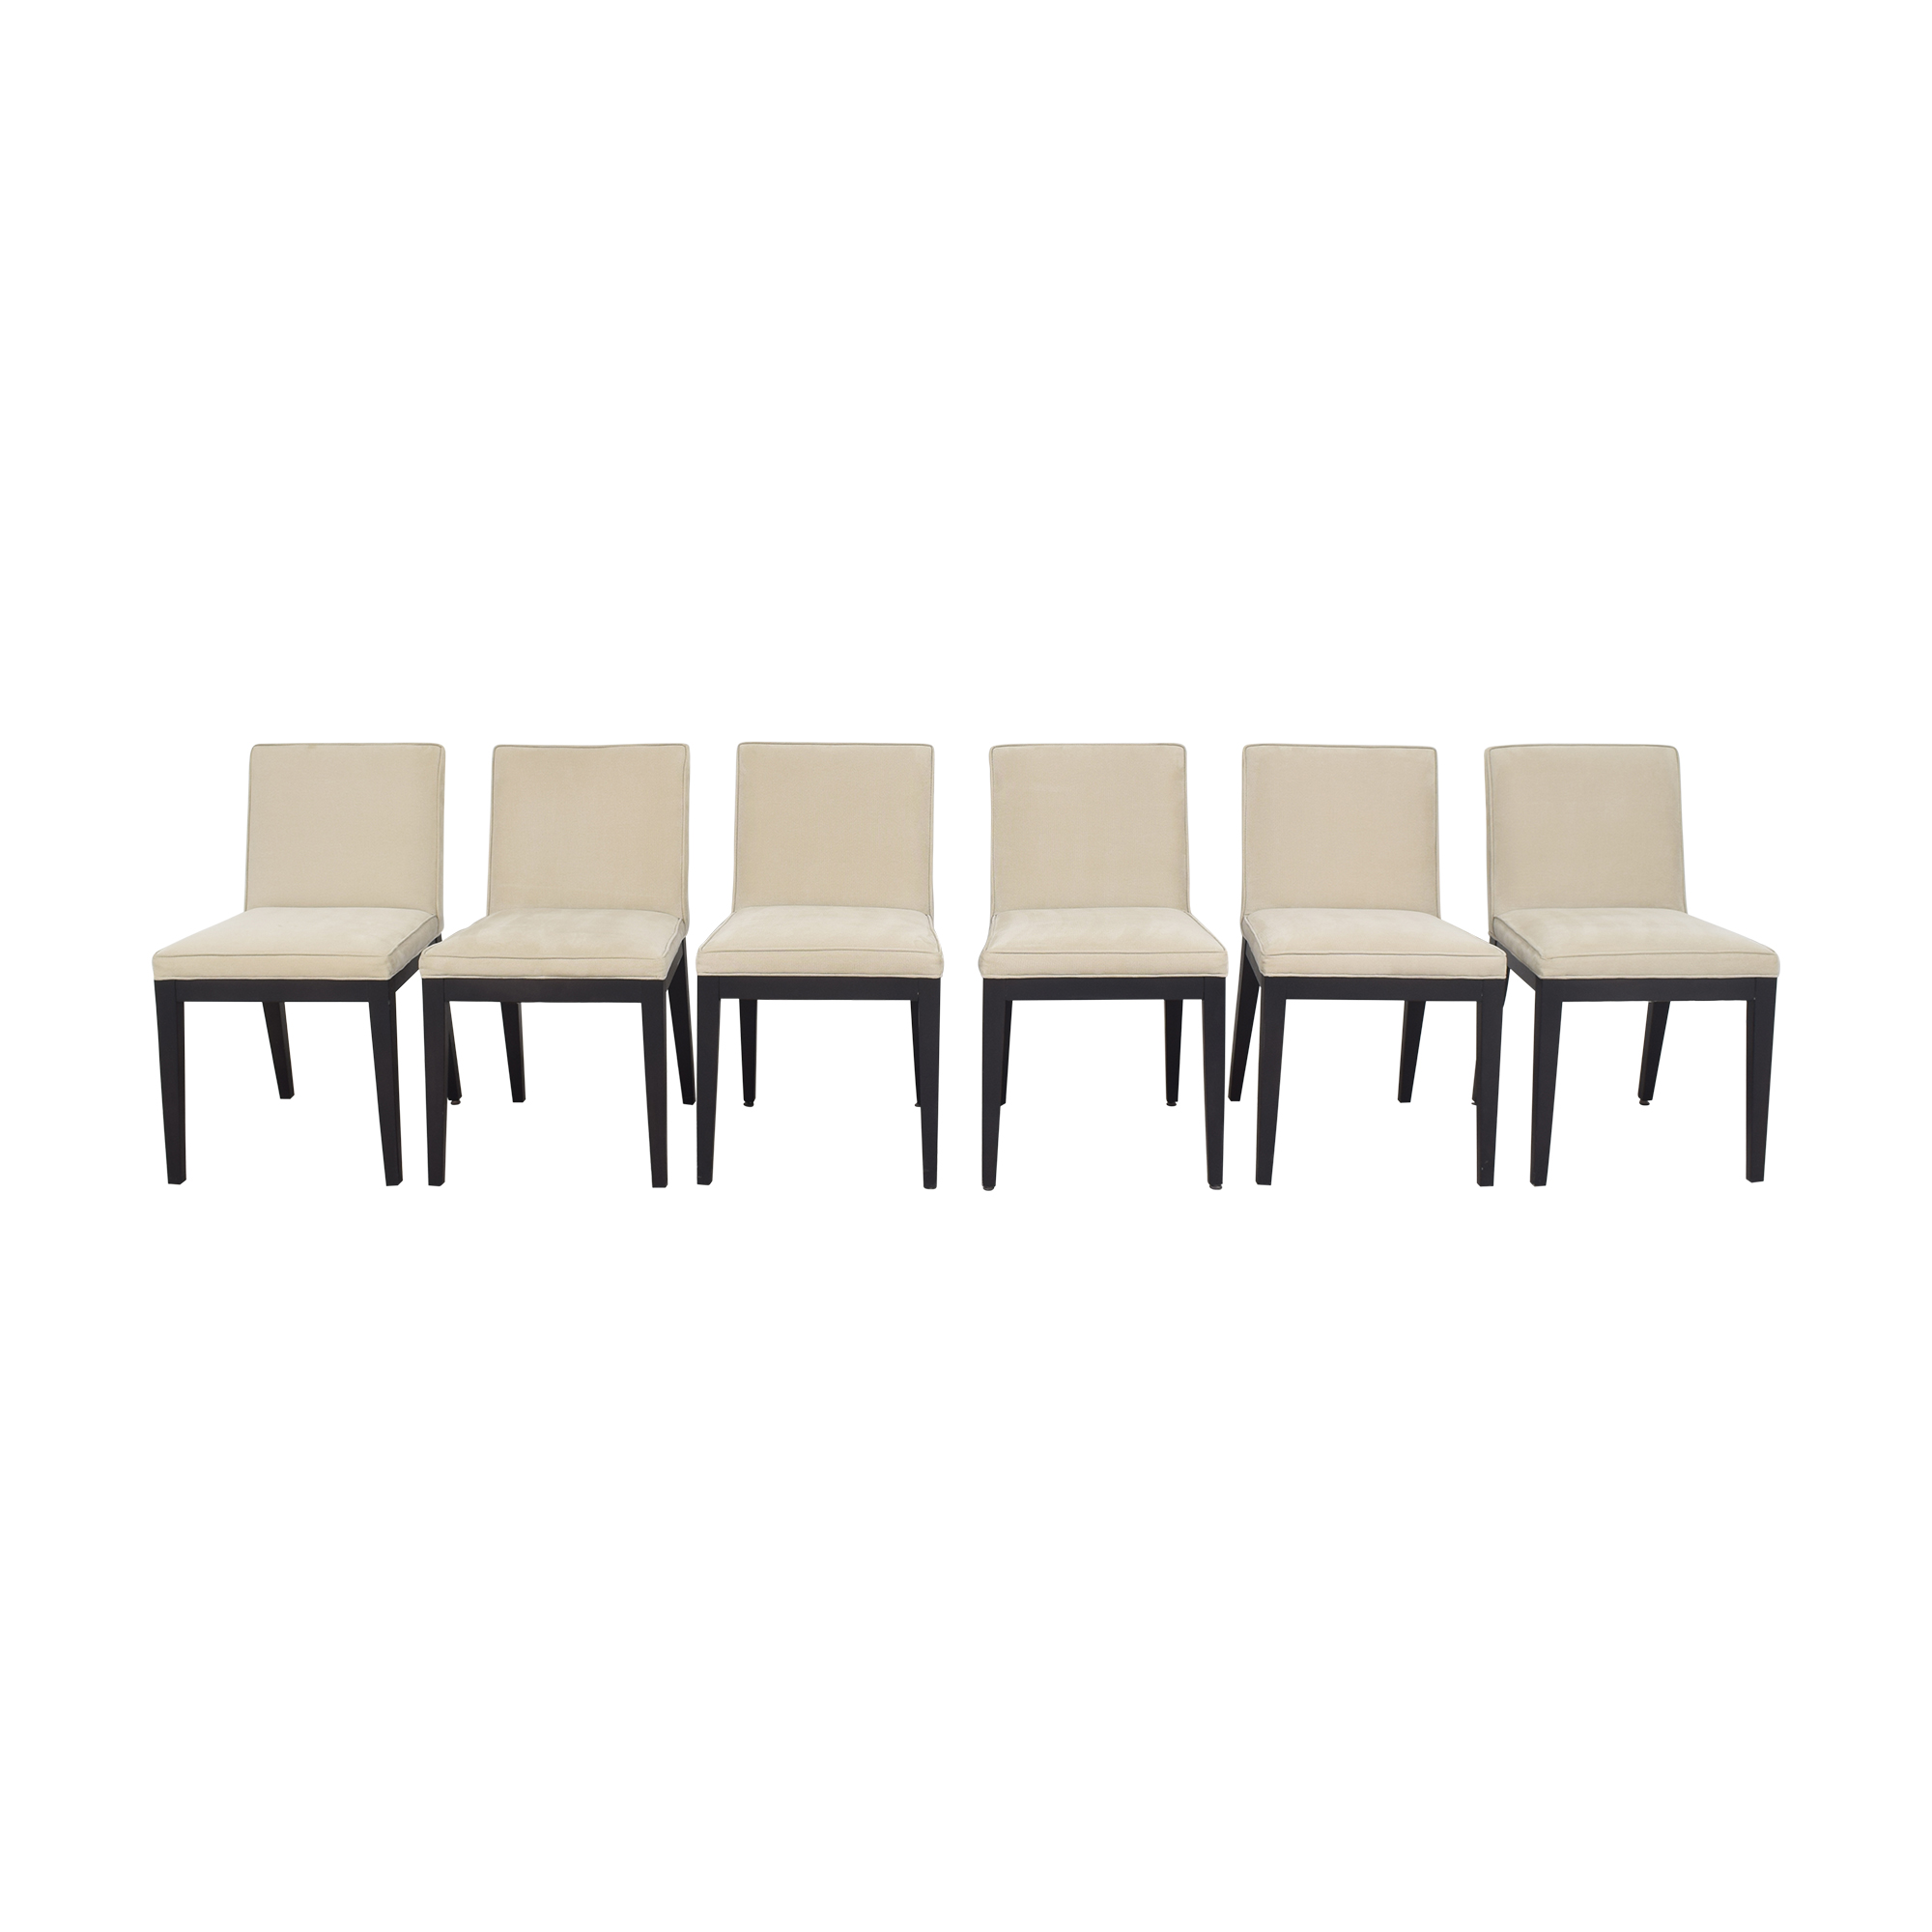 Room & Board Room & Board Ansel Dining Chairs Chairs